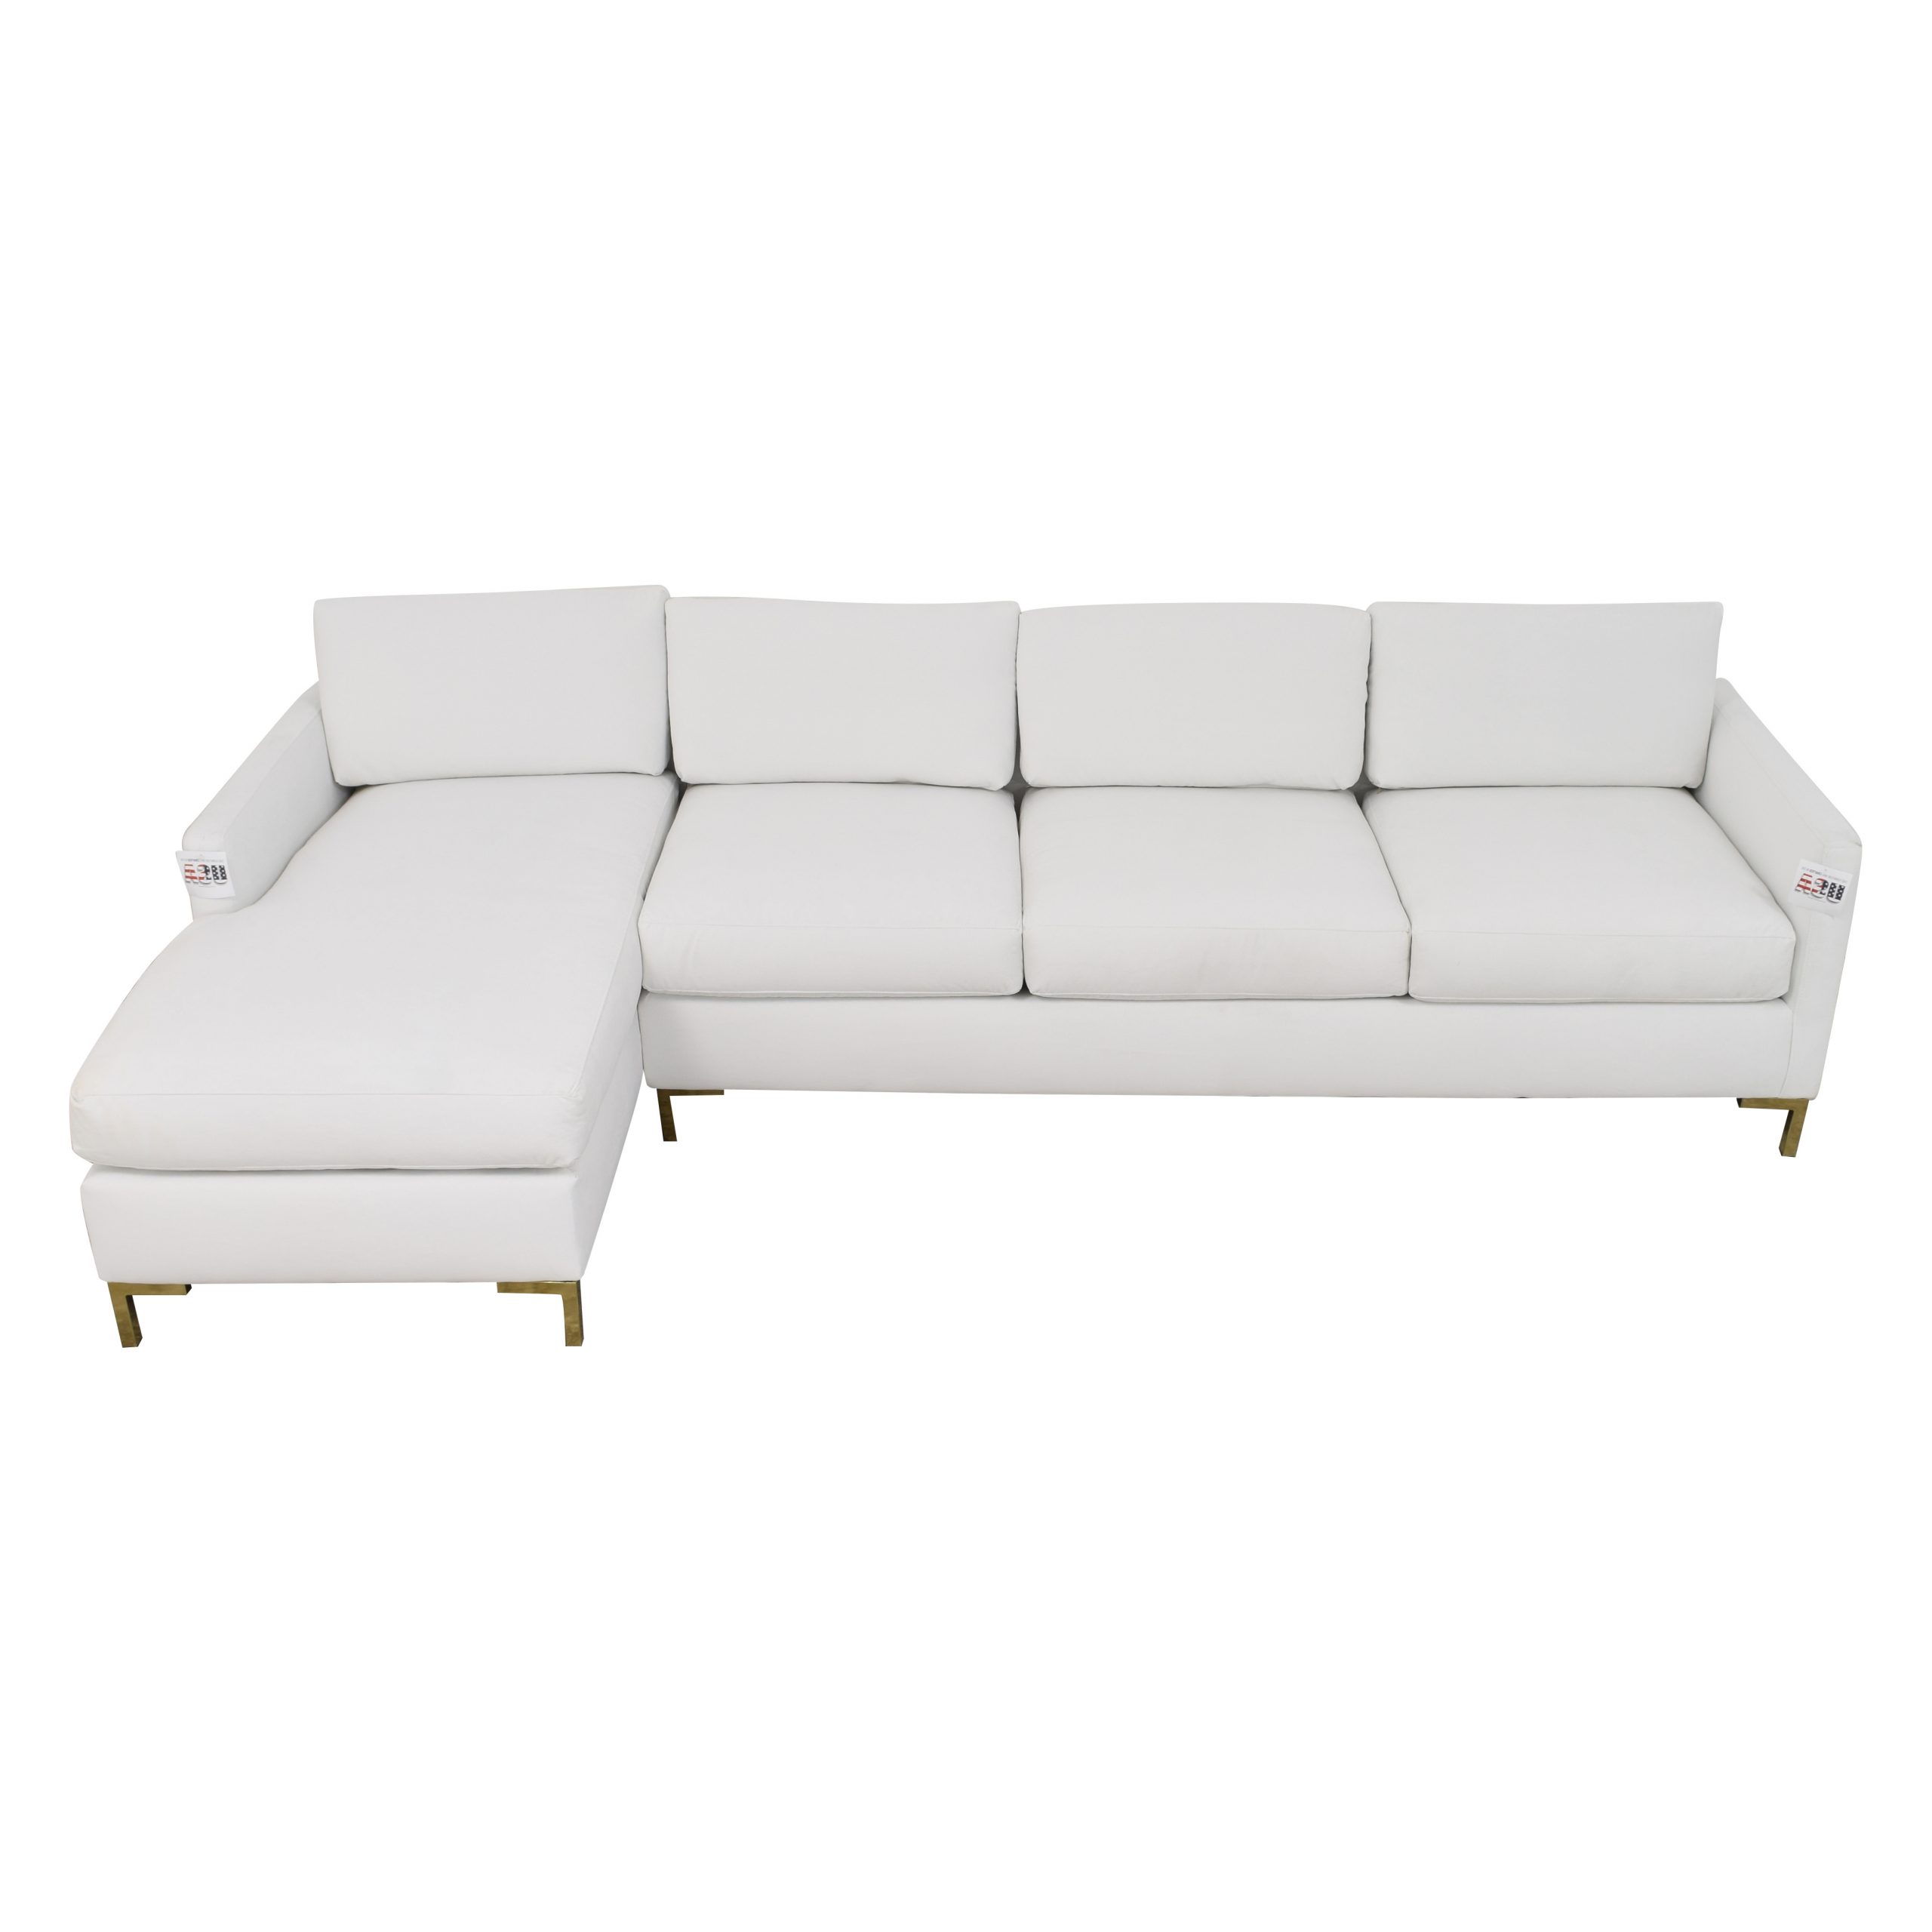 [%37% Off – The Inside The Inside Modern Sectional Right Inside Famous Kiefer Right Facing Sectional Sofas Kiefer Right Facing Sectional Sofas For Fashionable 37% Off – The Inside The Inside Modern Sectional Right 2018 Kiefer Right Facing Sectional Sofas Within 37% Off – The Inside The Inside Modern Sectional Right Most Up To Date 37% Off – The Inside The Inside Modern Sectional Right With Kiefer Right Facing Sectional Sofas%] (View 8 of 25)